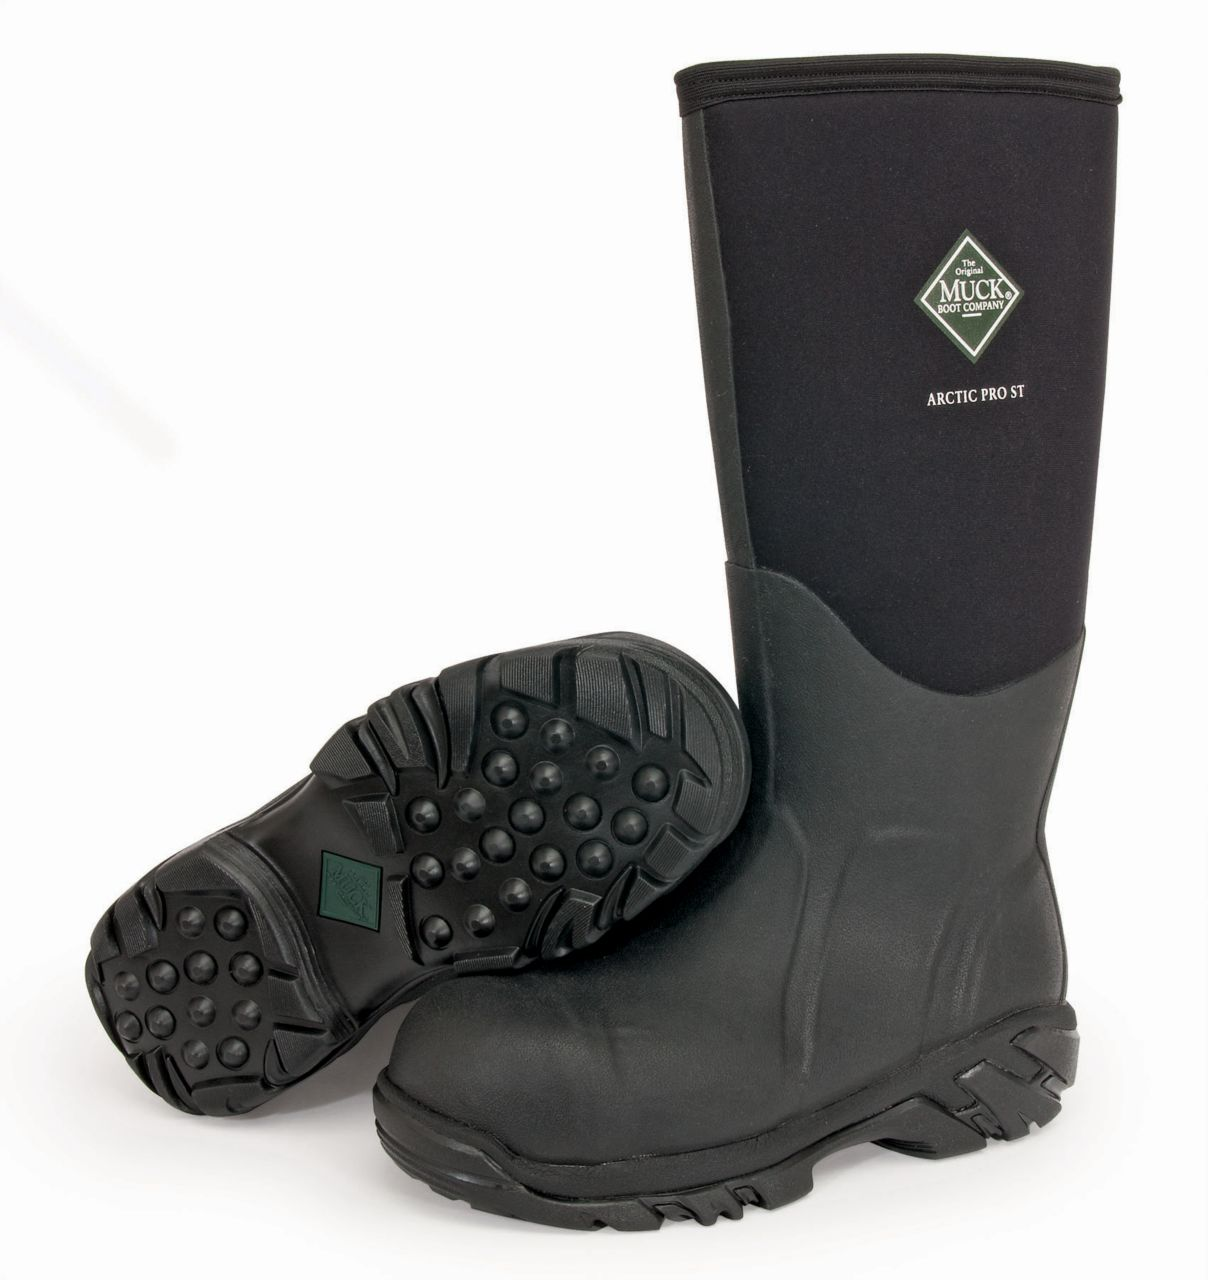 Muck Arctic Pro Safety Toe